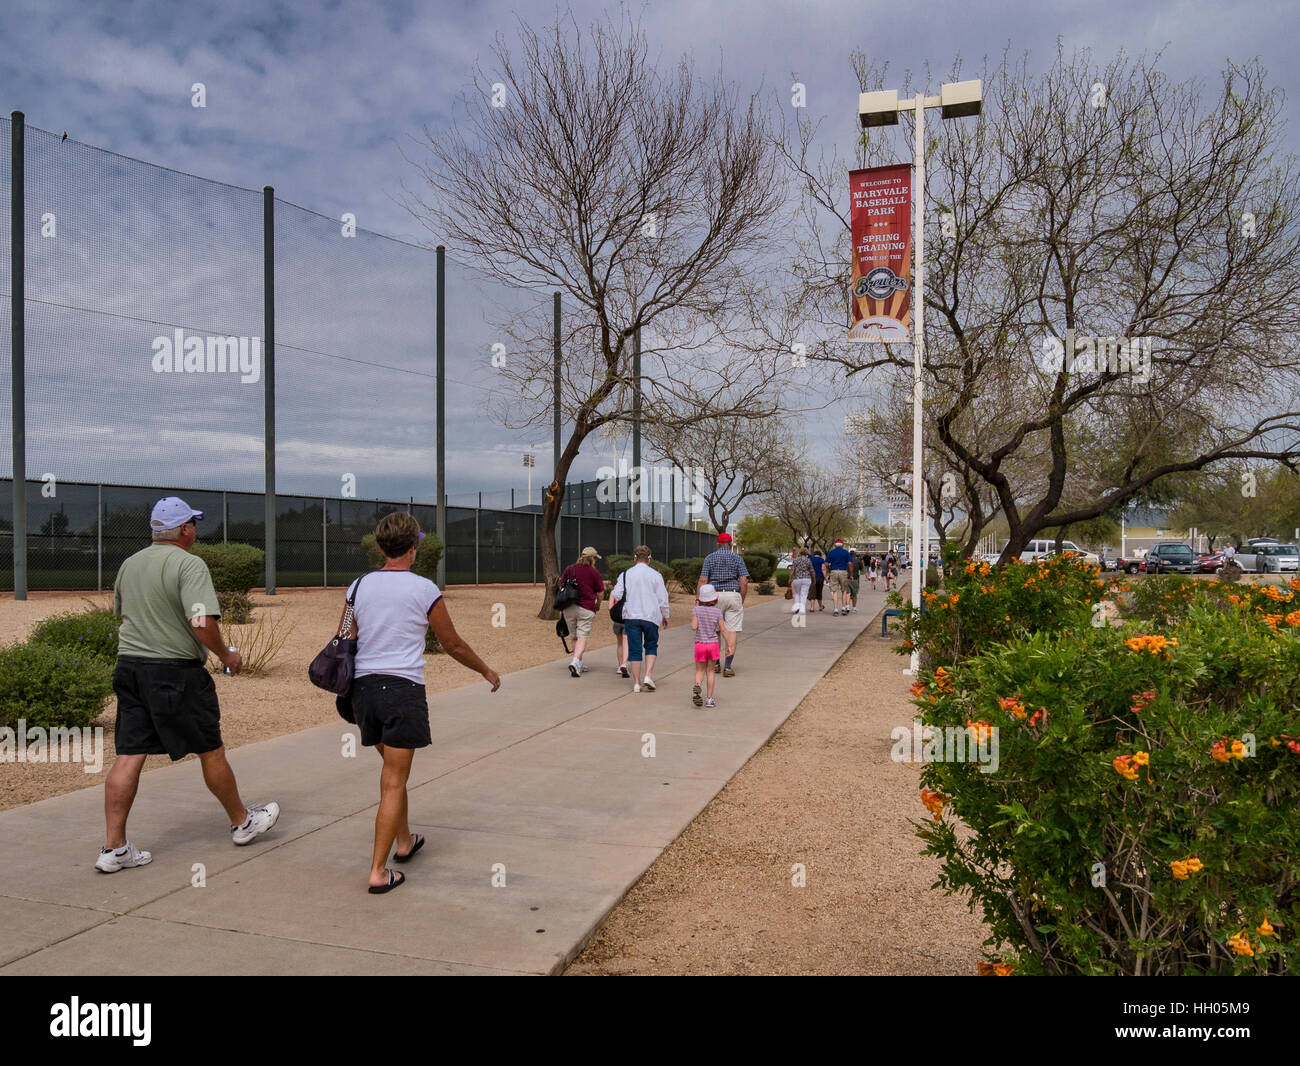 Fans walk to the entrance, of the Maryvale Baseball Park, Phoenix, Arizona. - Stock Image